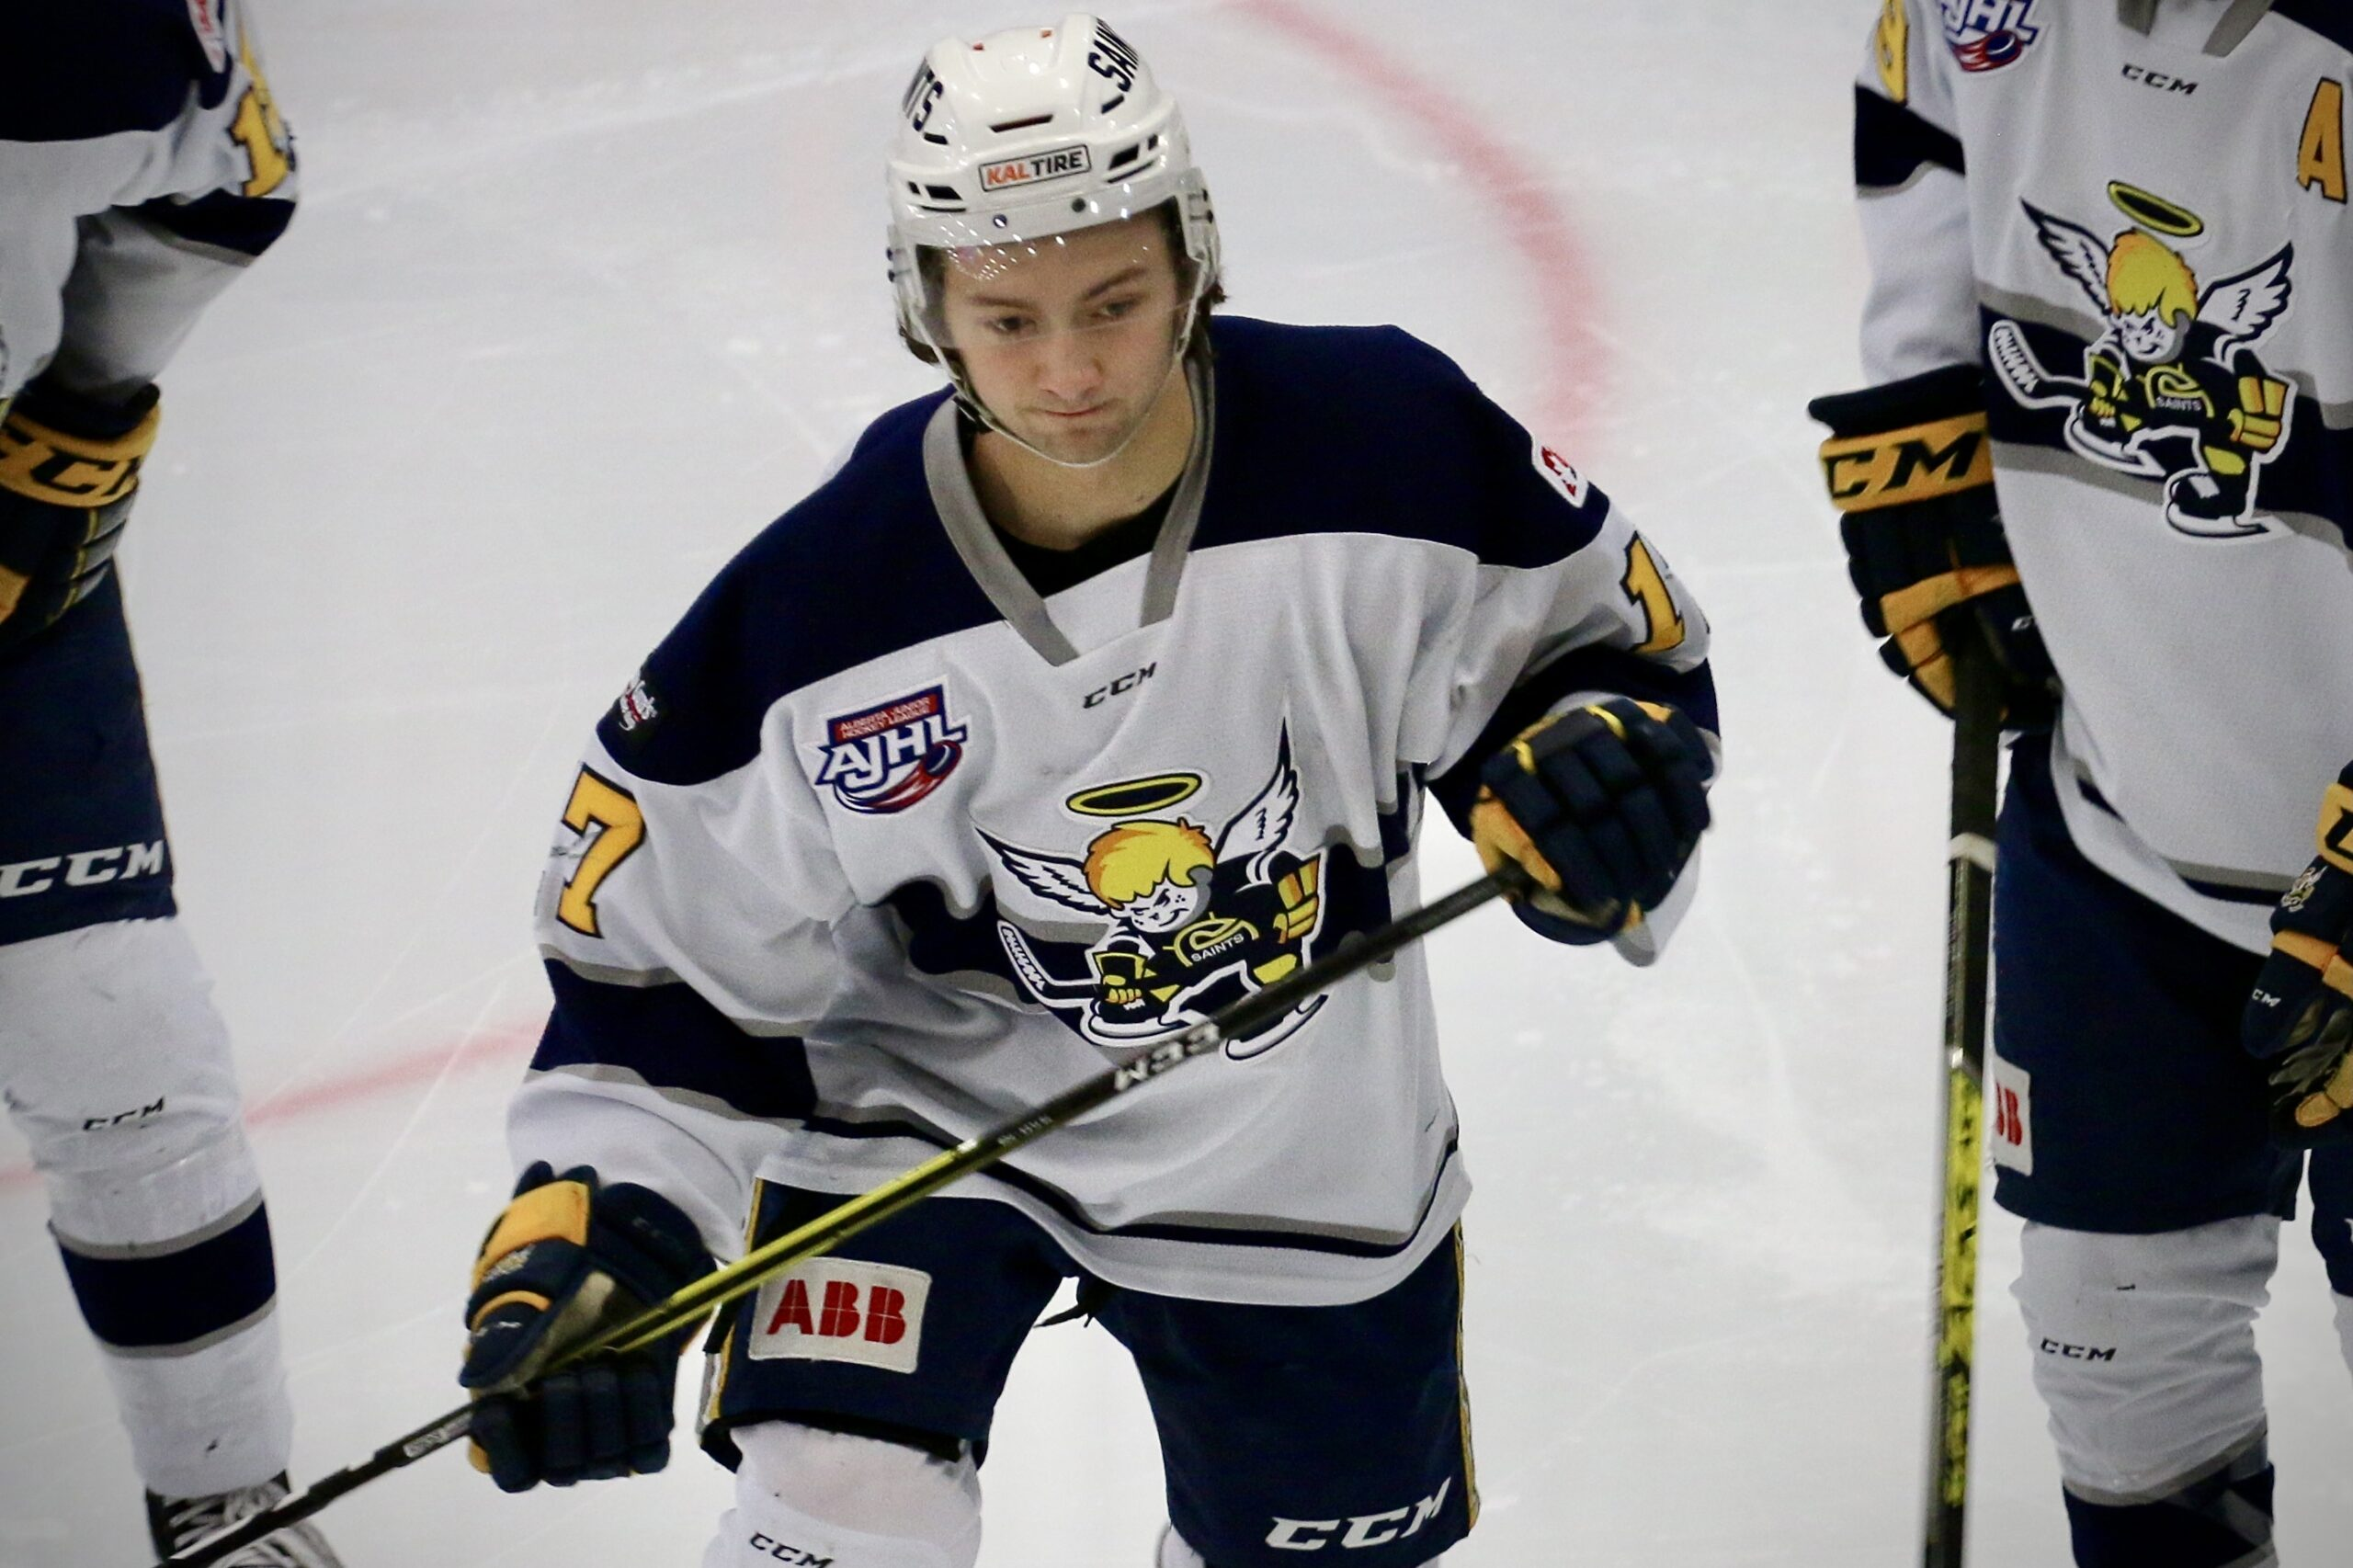 Joss, McKinley, Hauer Named AJHL Players of the Week